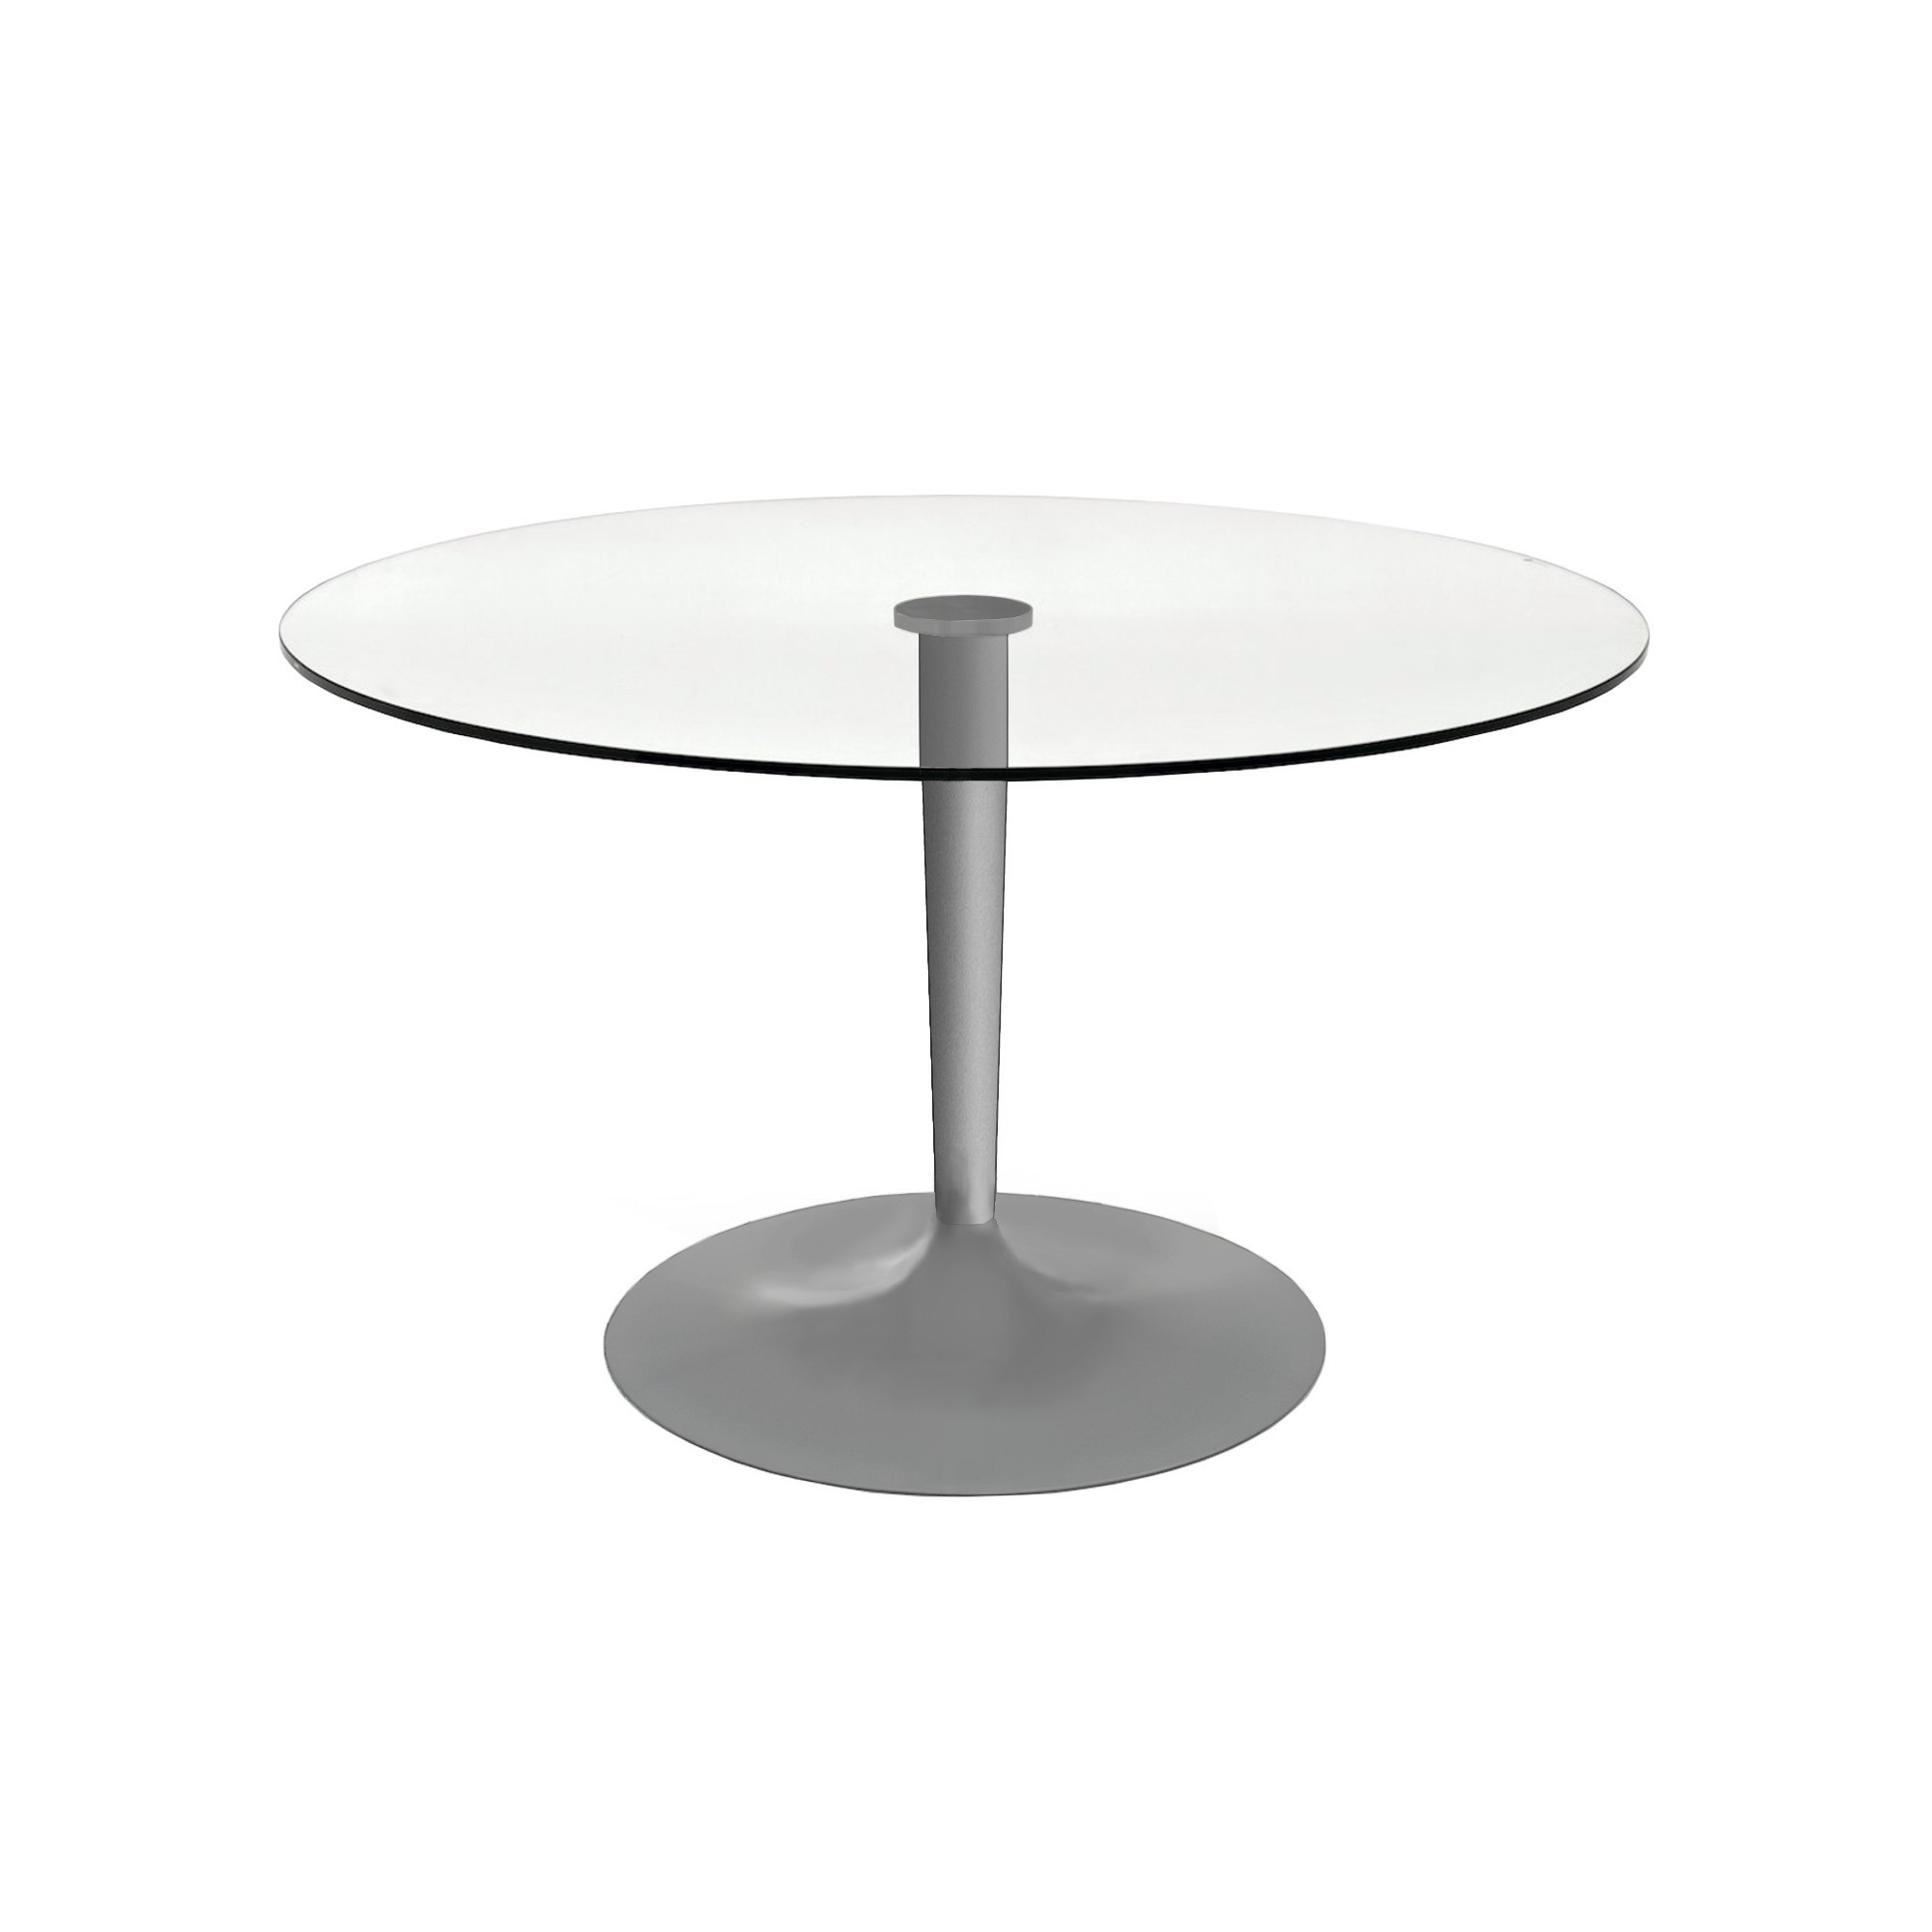 Tavolo Planet Calligaris Bianco.Planet Fixed Tables Tables Connubia By Calligaris Masonionline